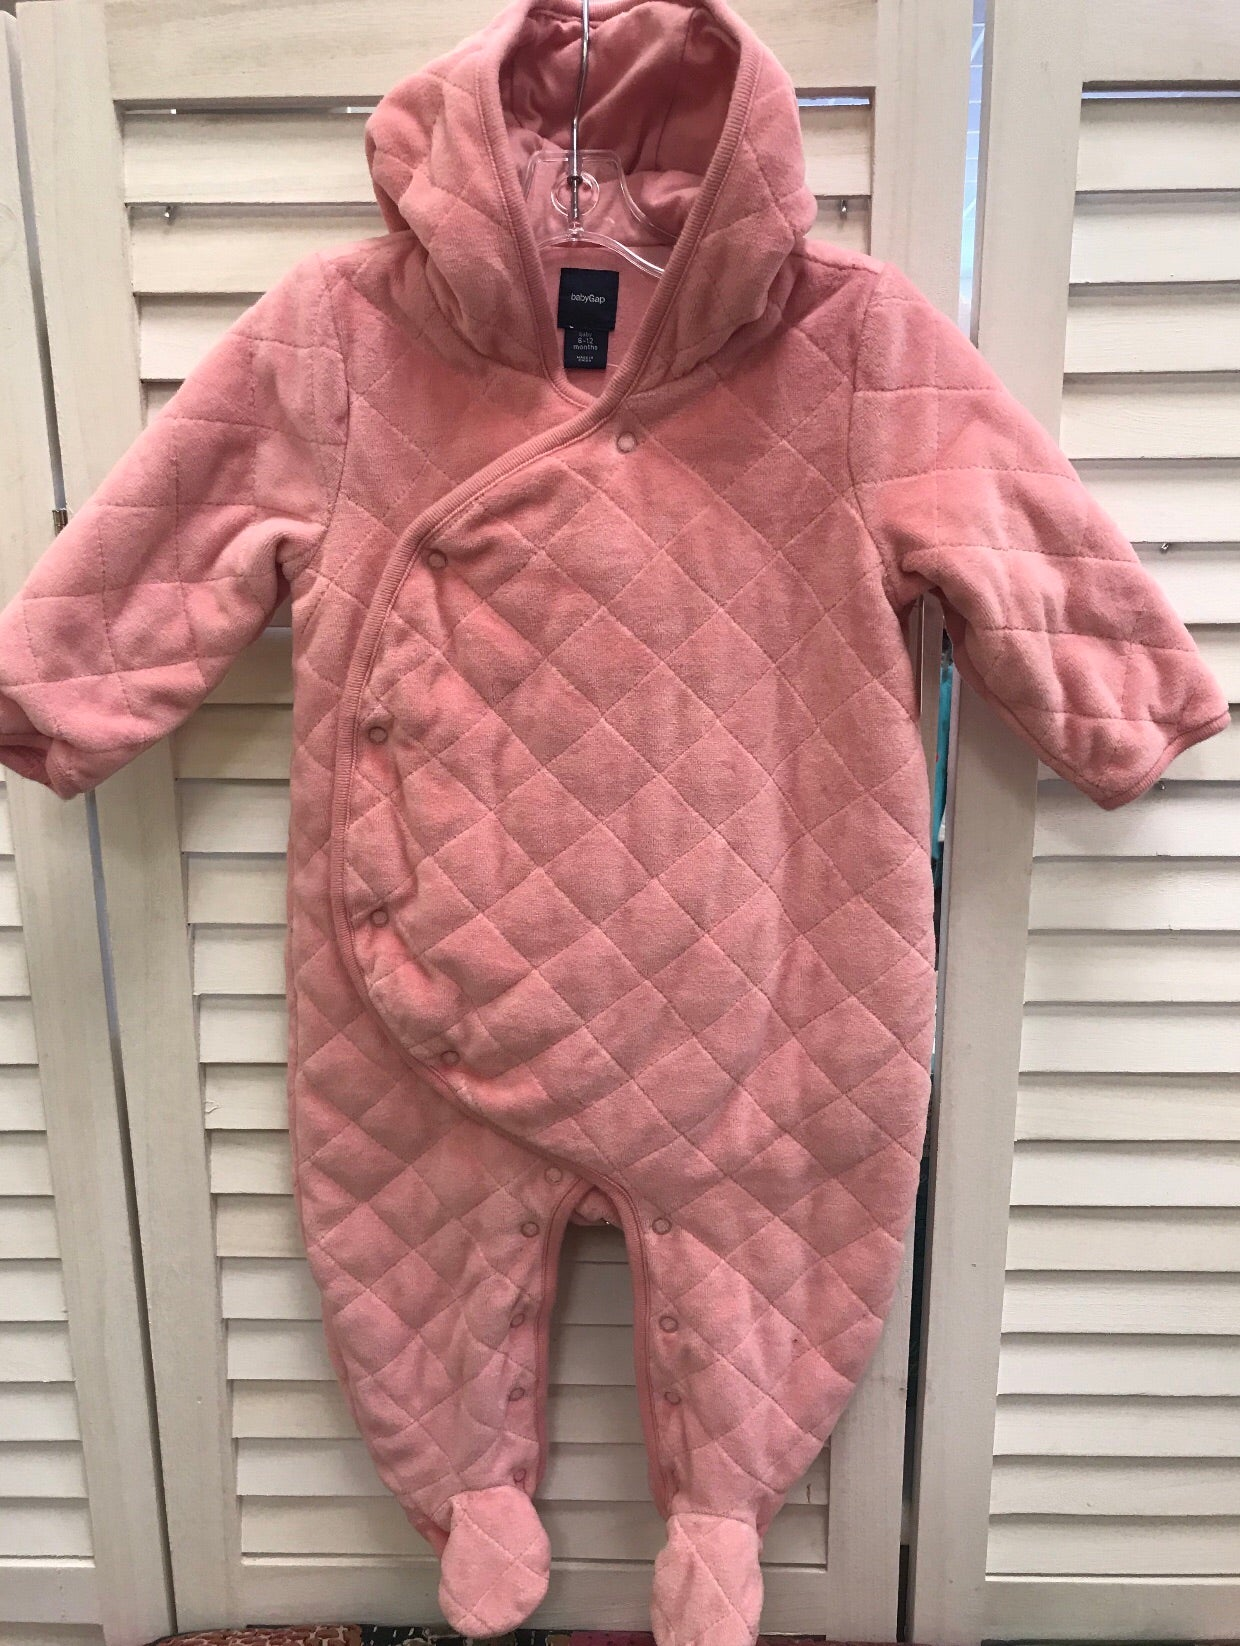 Baby gap pink snowsuit 6-12 months - Le Bébé Chic Boutique